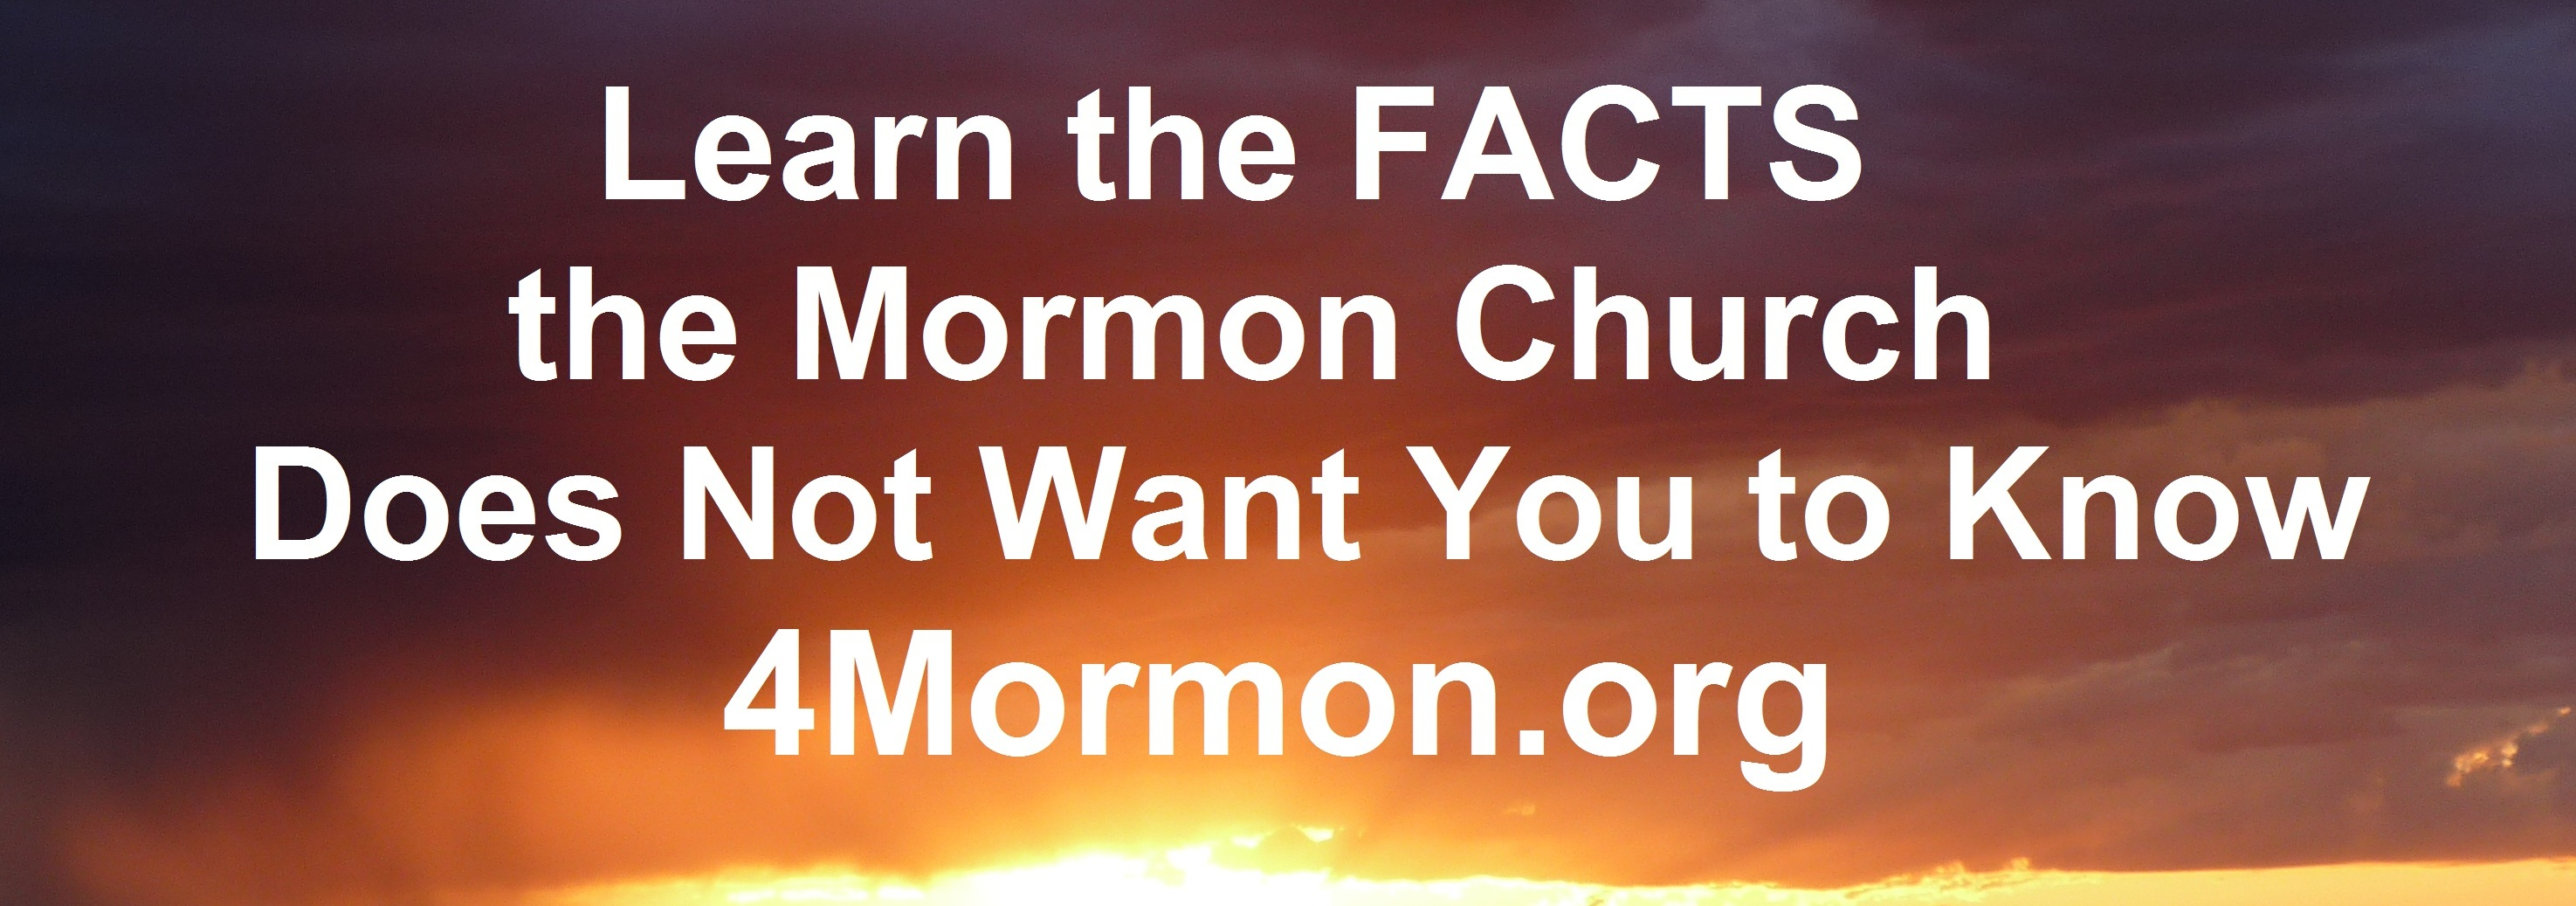 Learn the FACTS the Mormon Church Does Not Want You to Know 4Mormon.org